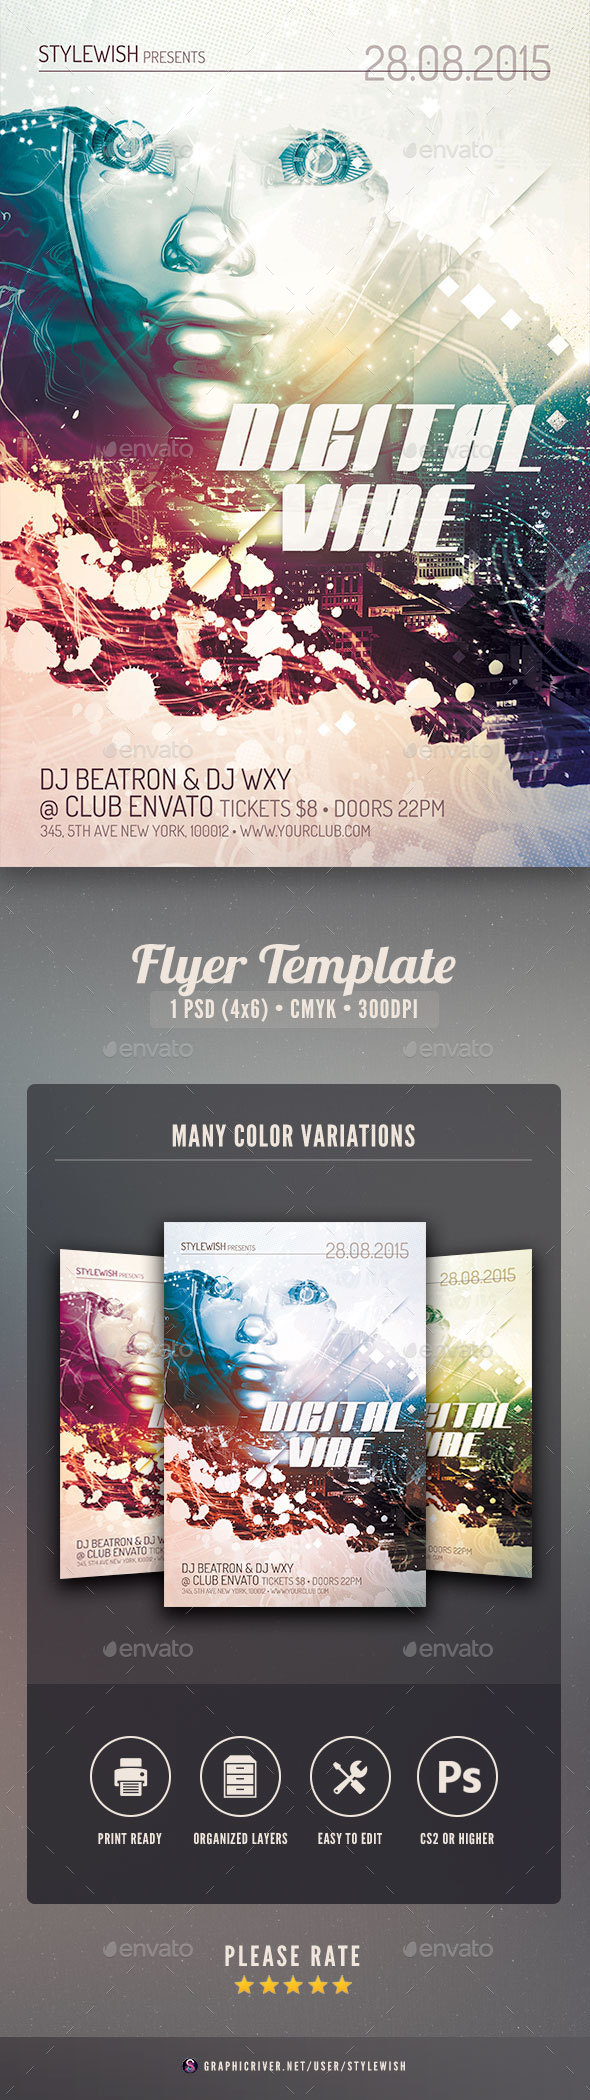 Digital Vibe Flyer - Clubs & Parties Events